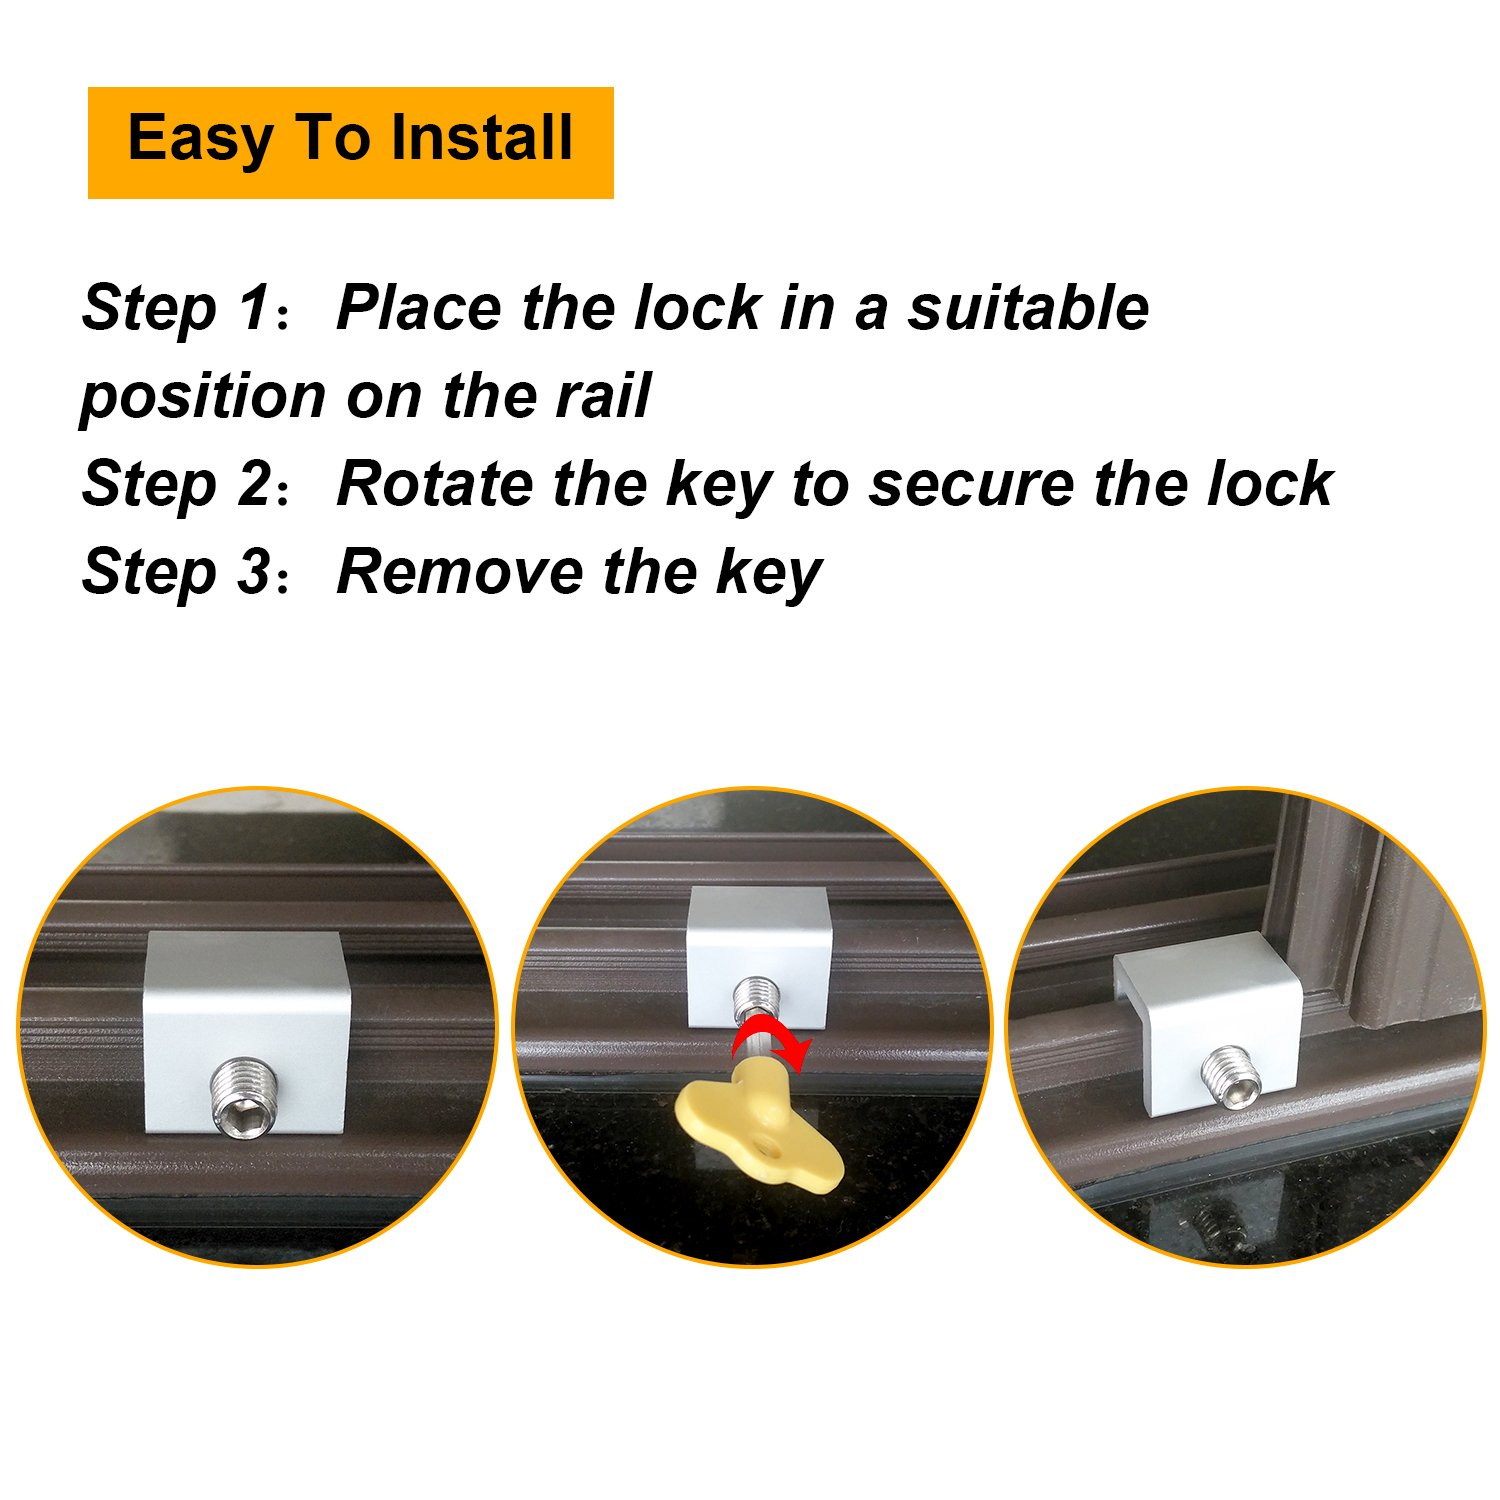 Maxdot Adjustable Sliding Window Locks Aluminum Alloy Window Door Frame Security Locks with Key for Home and Office (15) by Maxdot (Image #3)